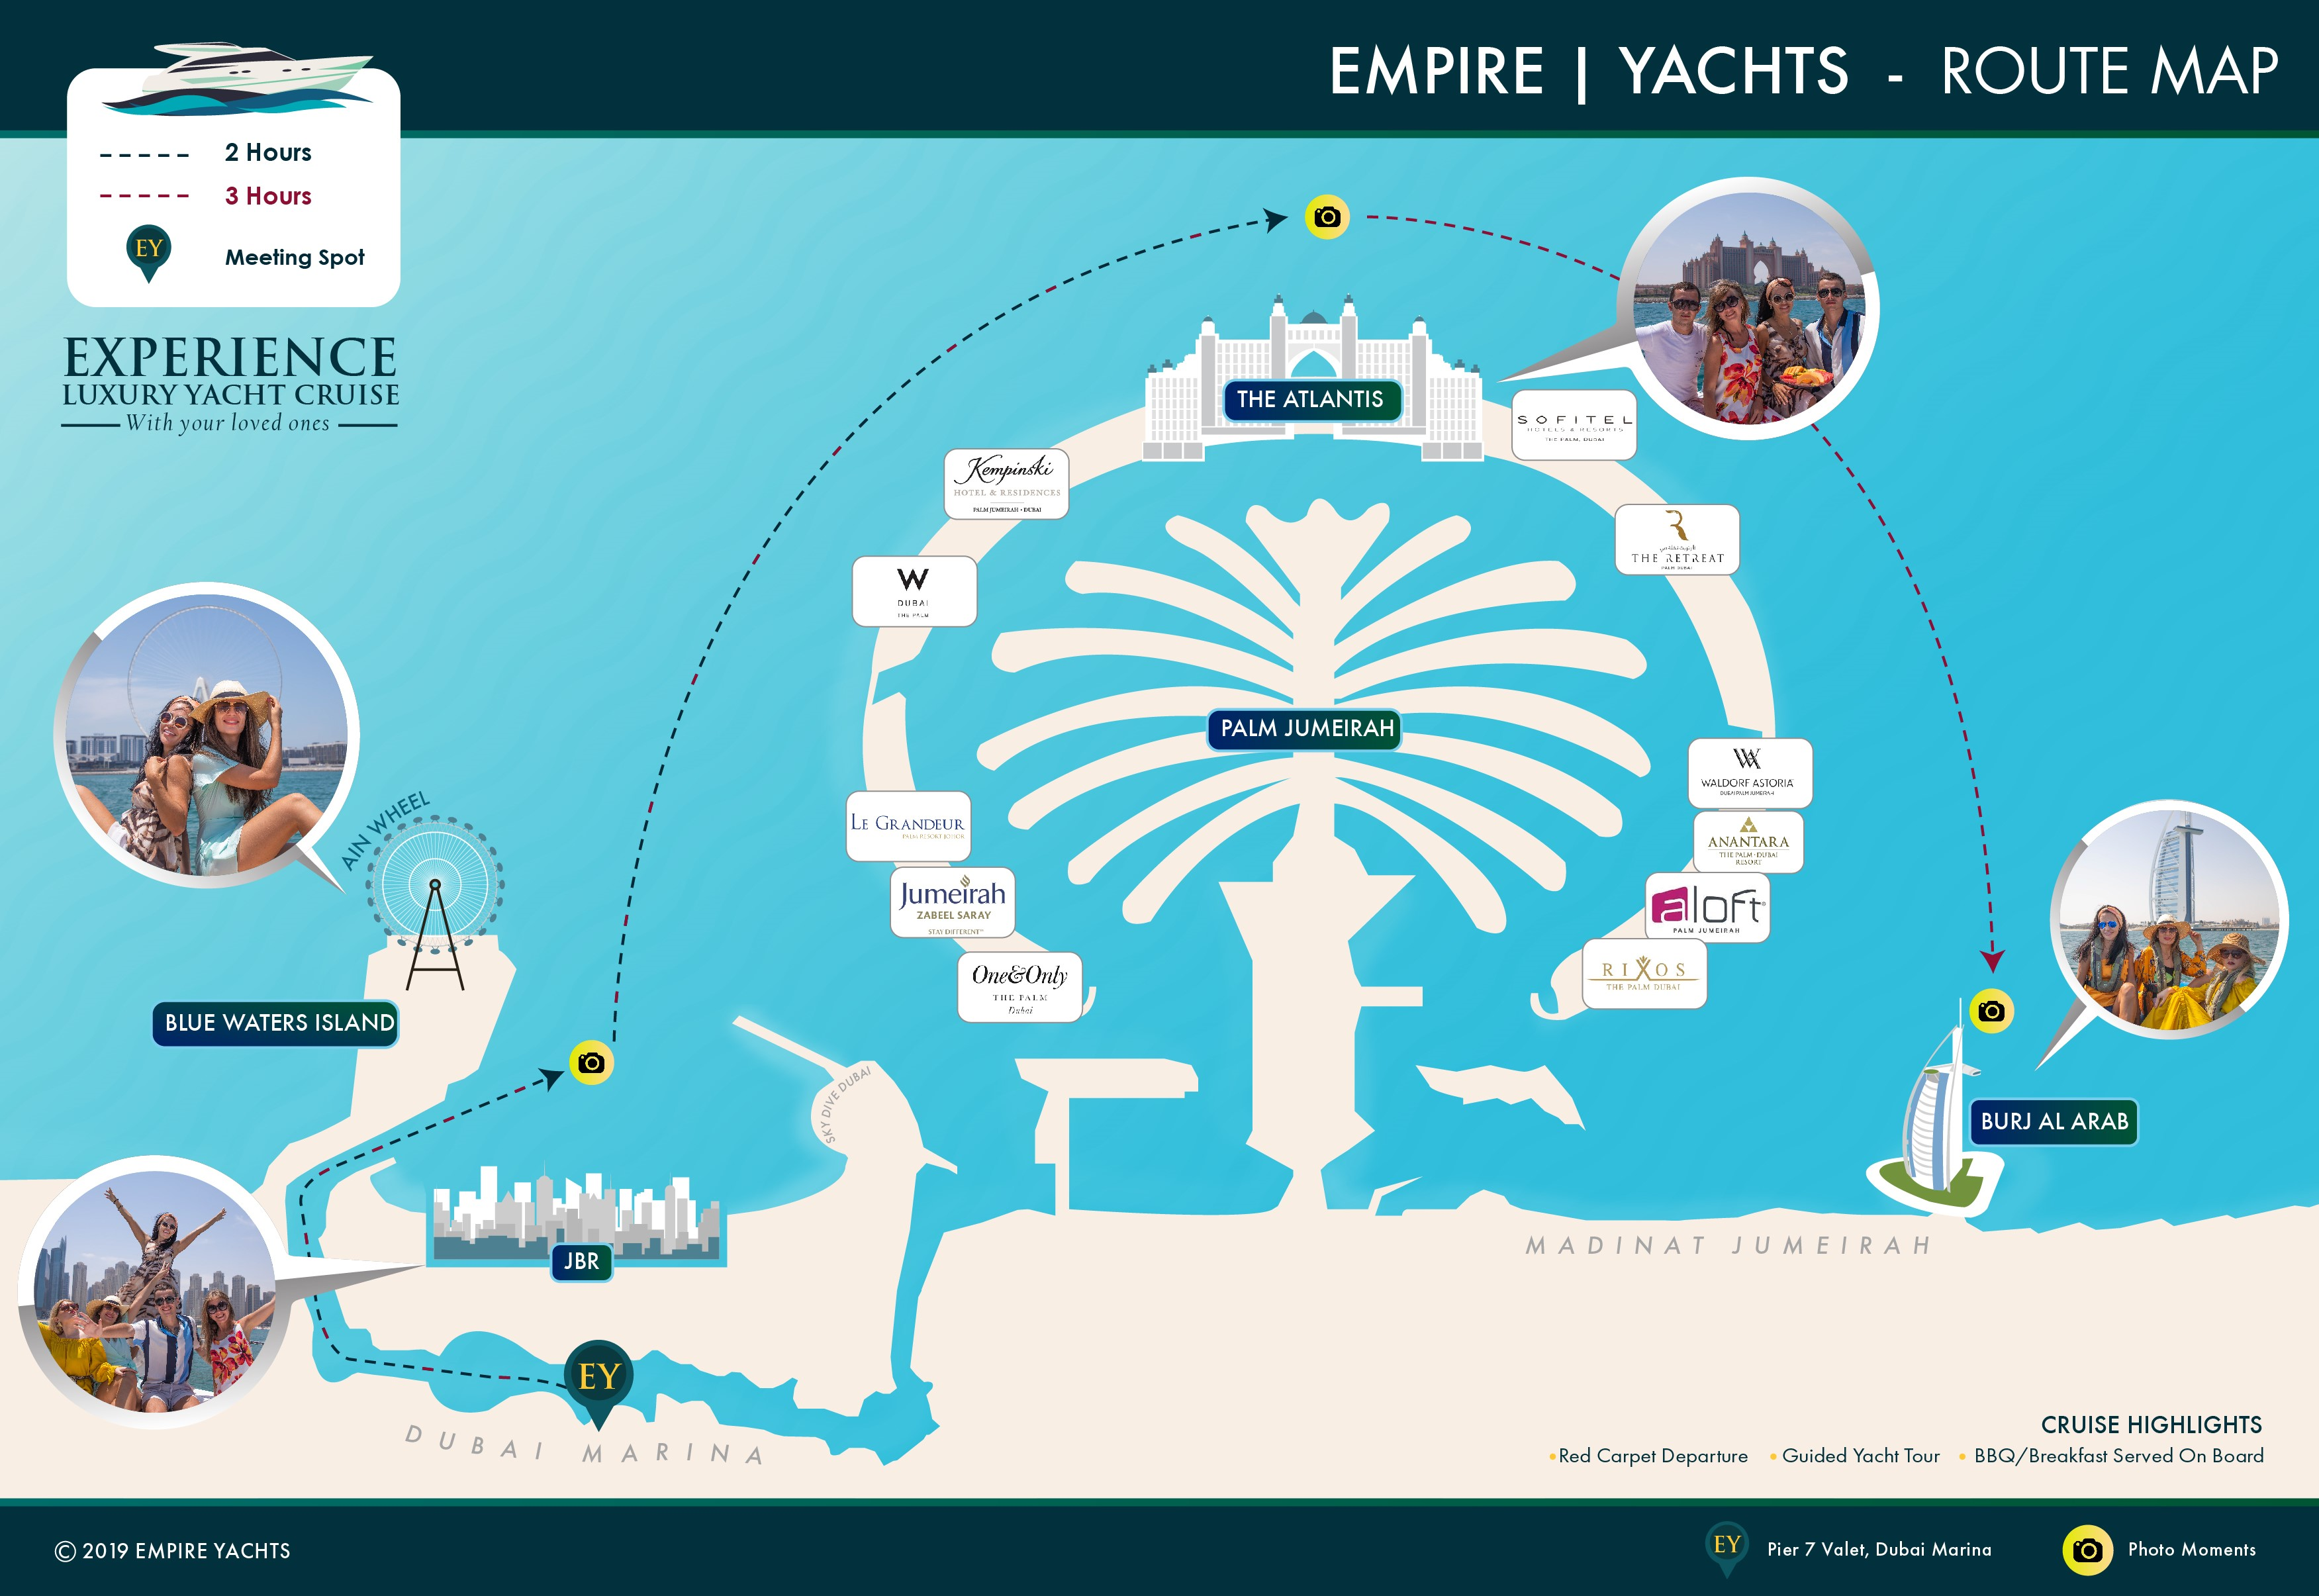 Empire Yachts - Route Map